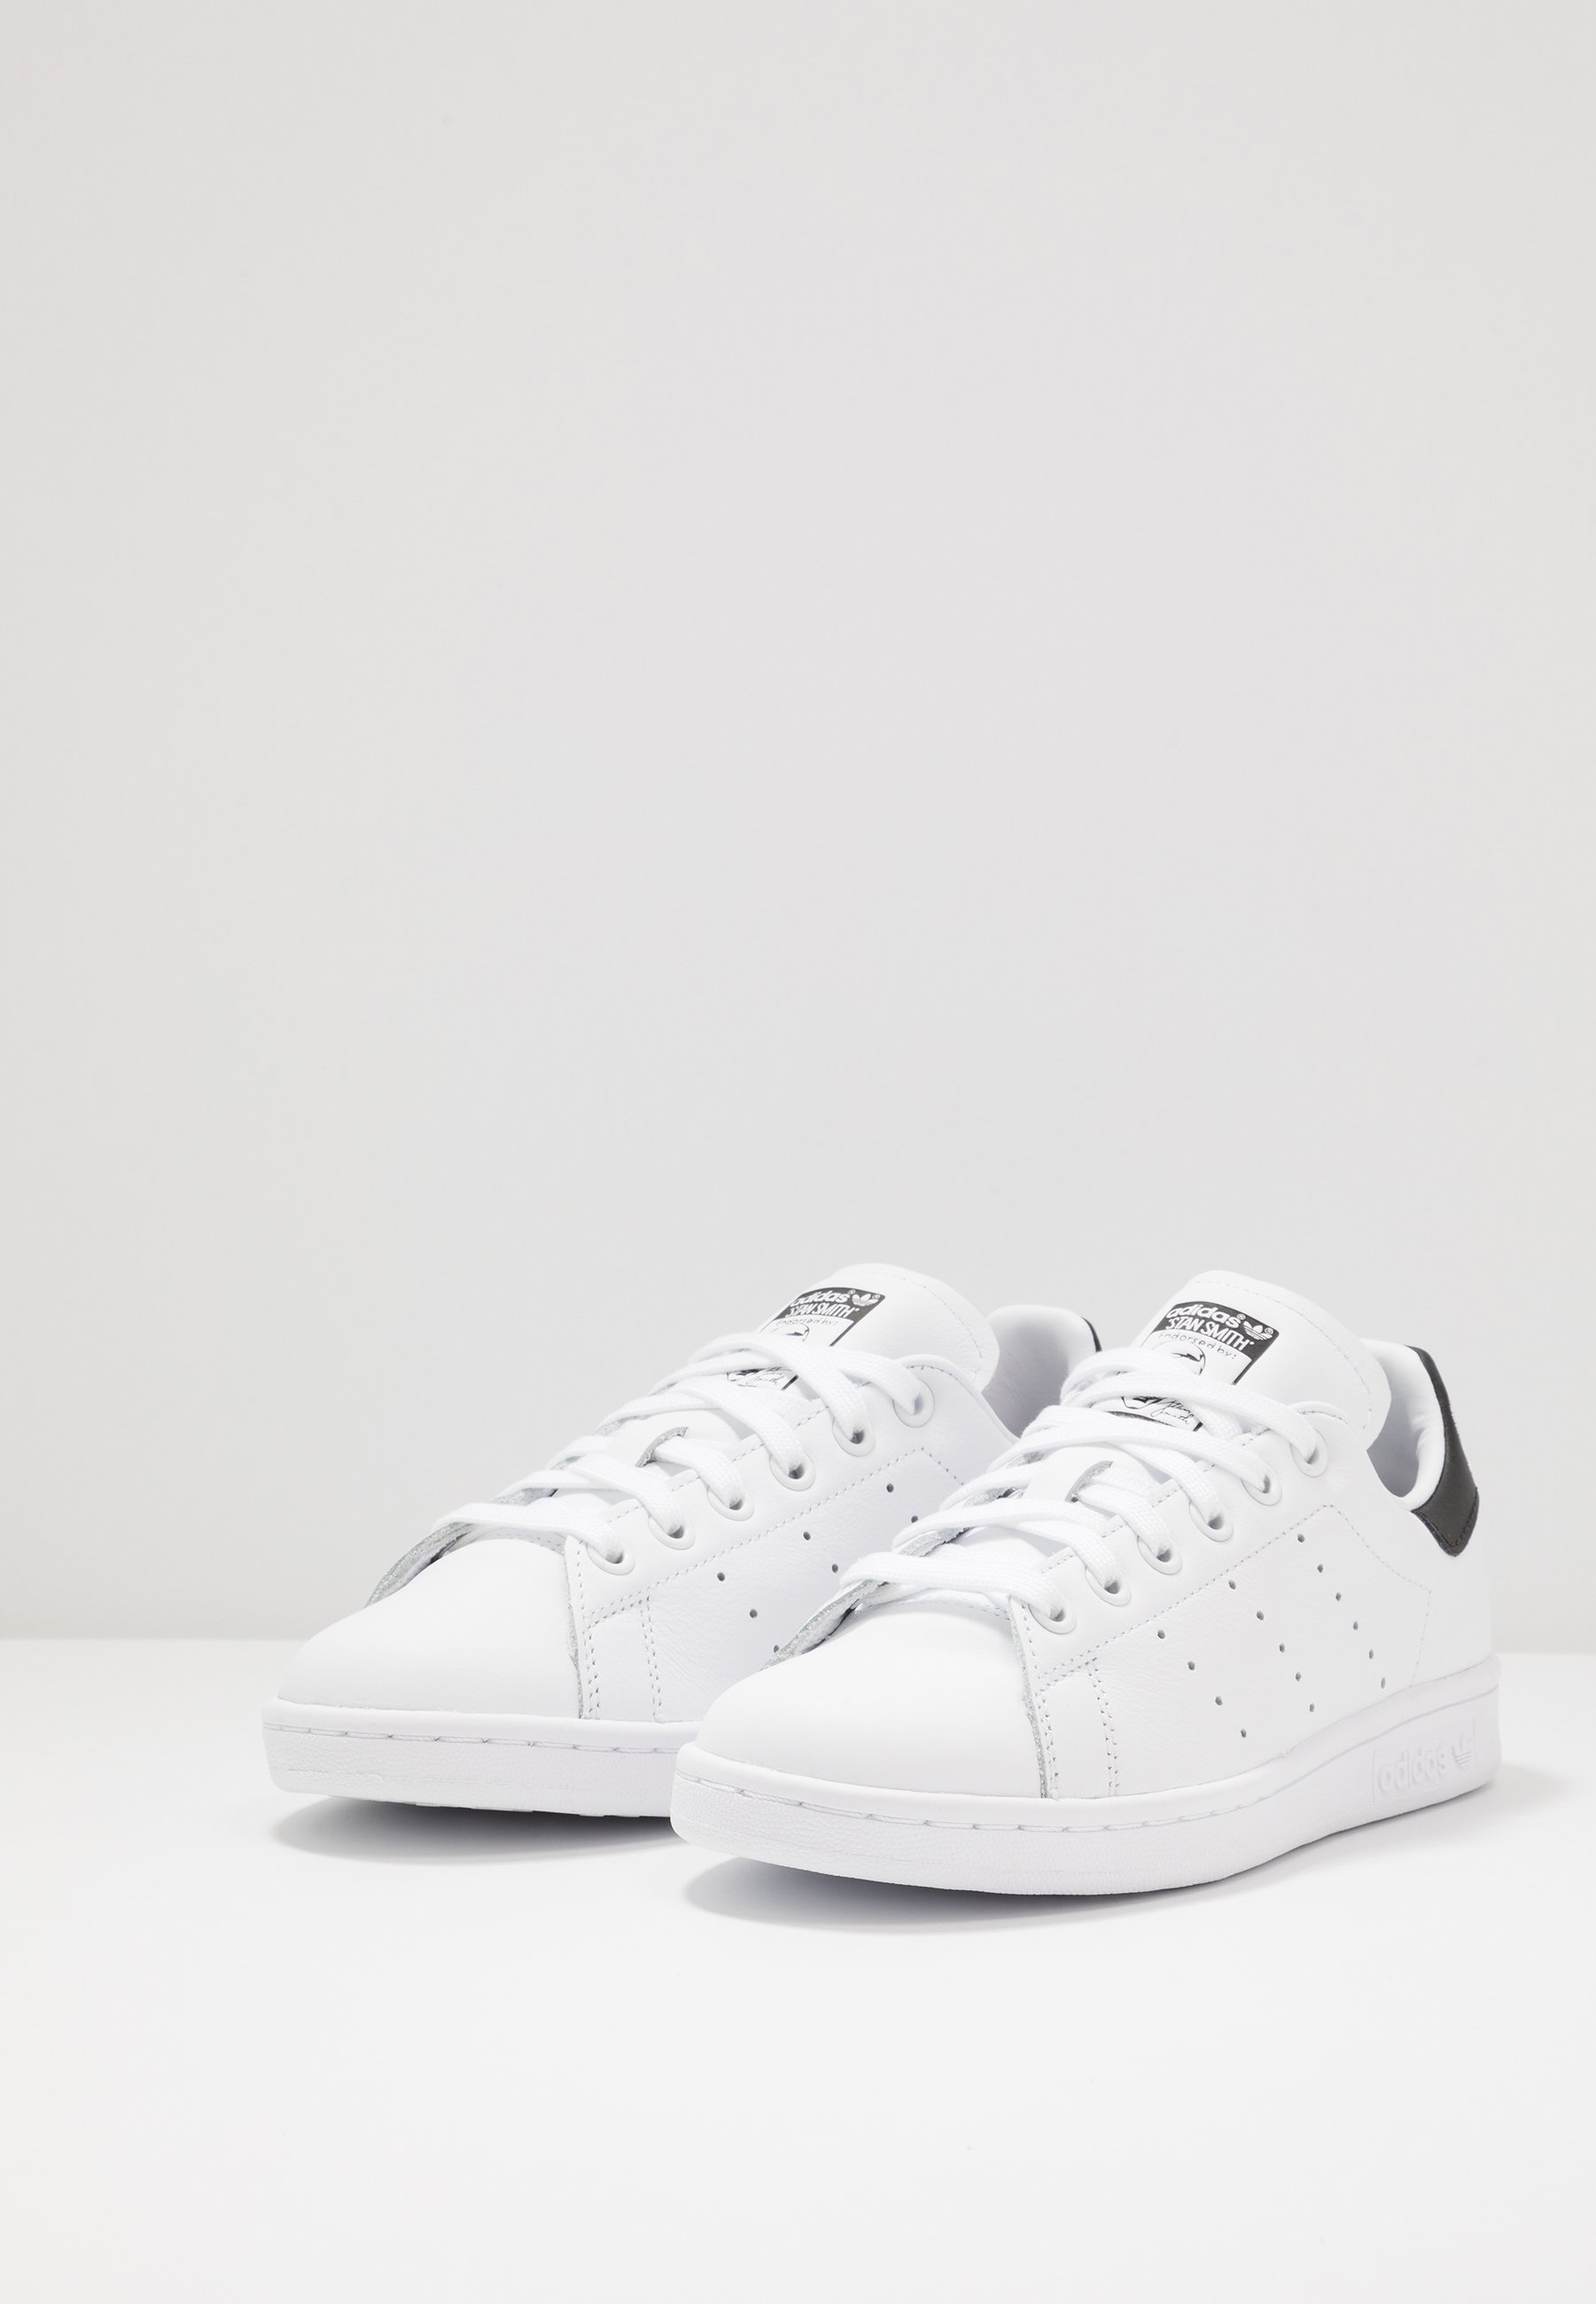 Adidas Originals Stan Smith Neon Heel Shoes - Sneakers Basse Footwear White/core Black 08X1GAz